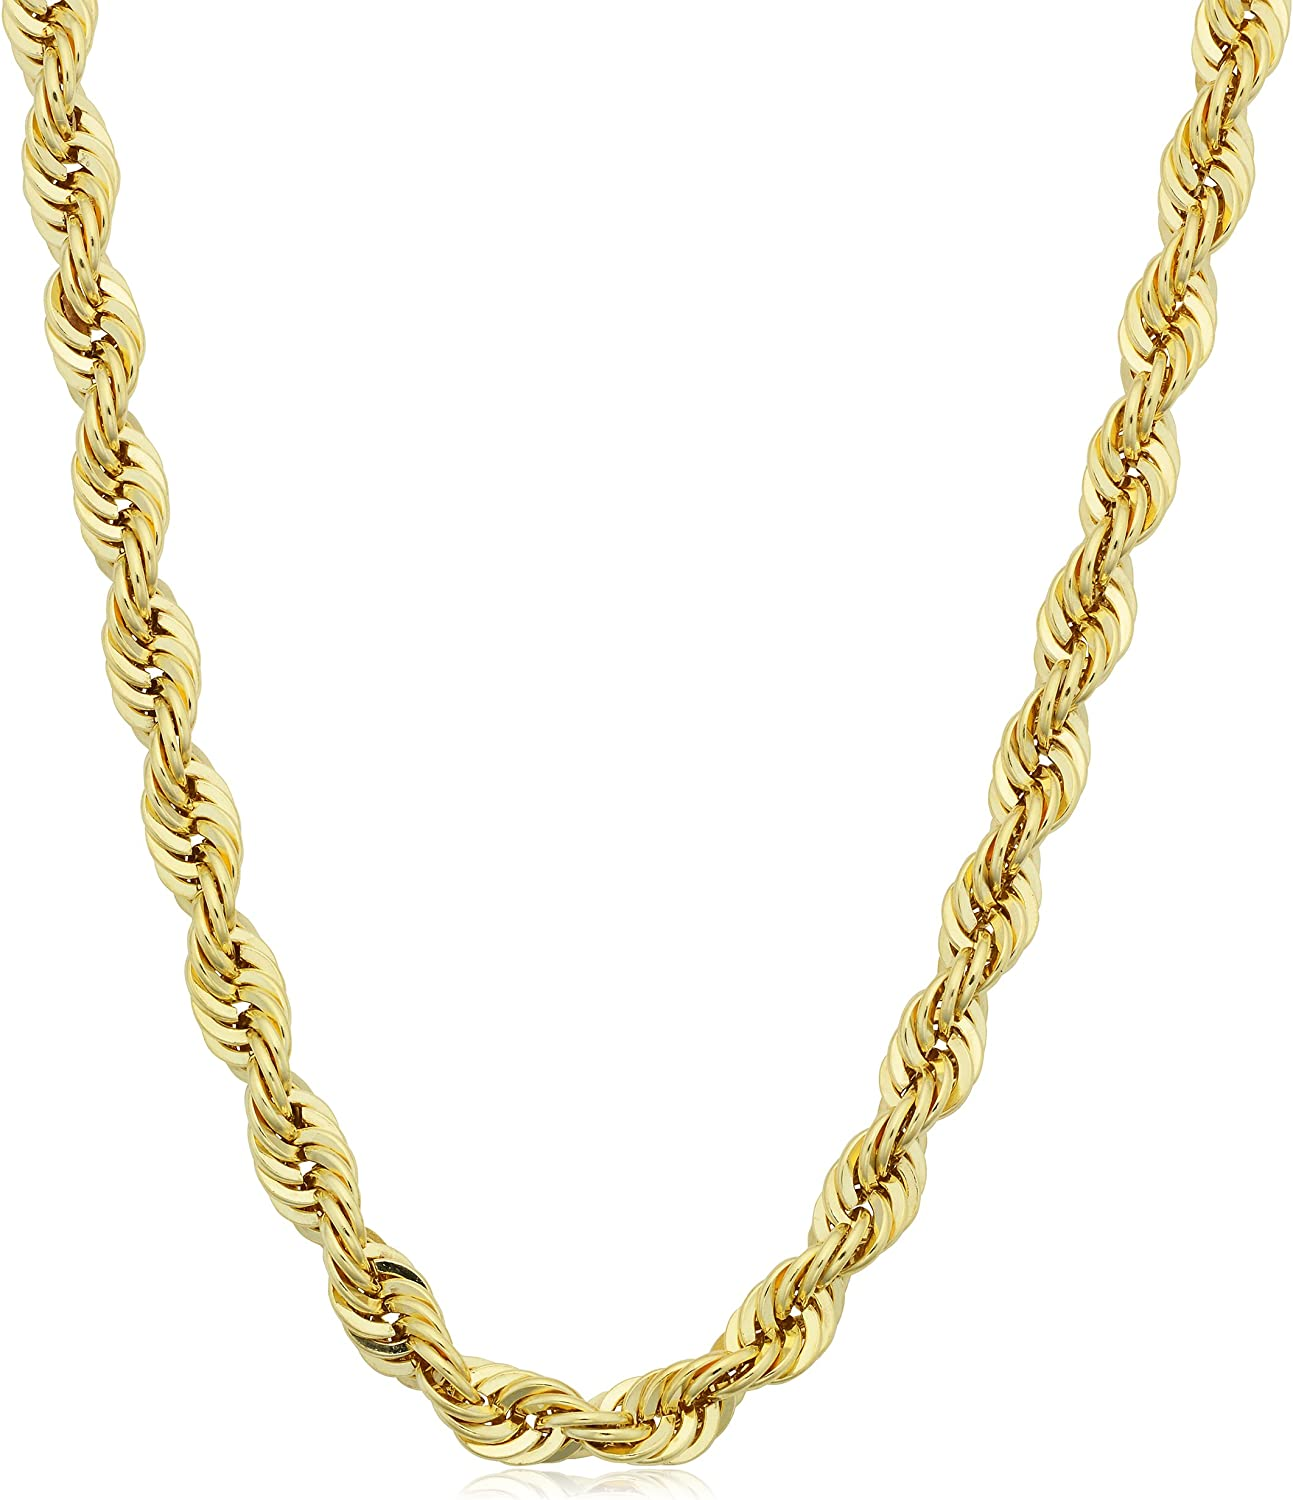 Kooljewelry 14k Yellow Ranking TOP8 Nippon regular agency Gold Filled 4.2mm Chain Rope 16 Necklace